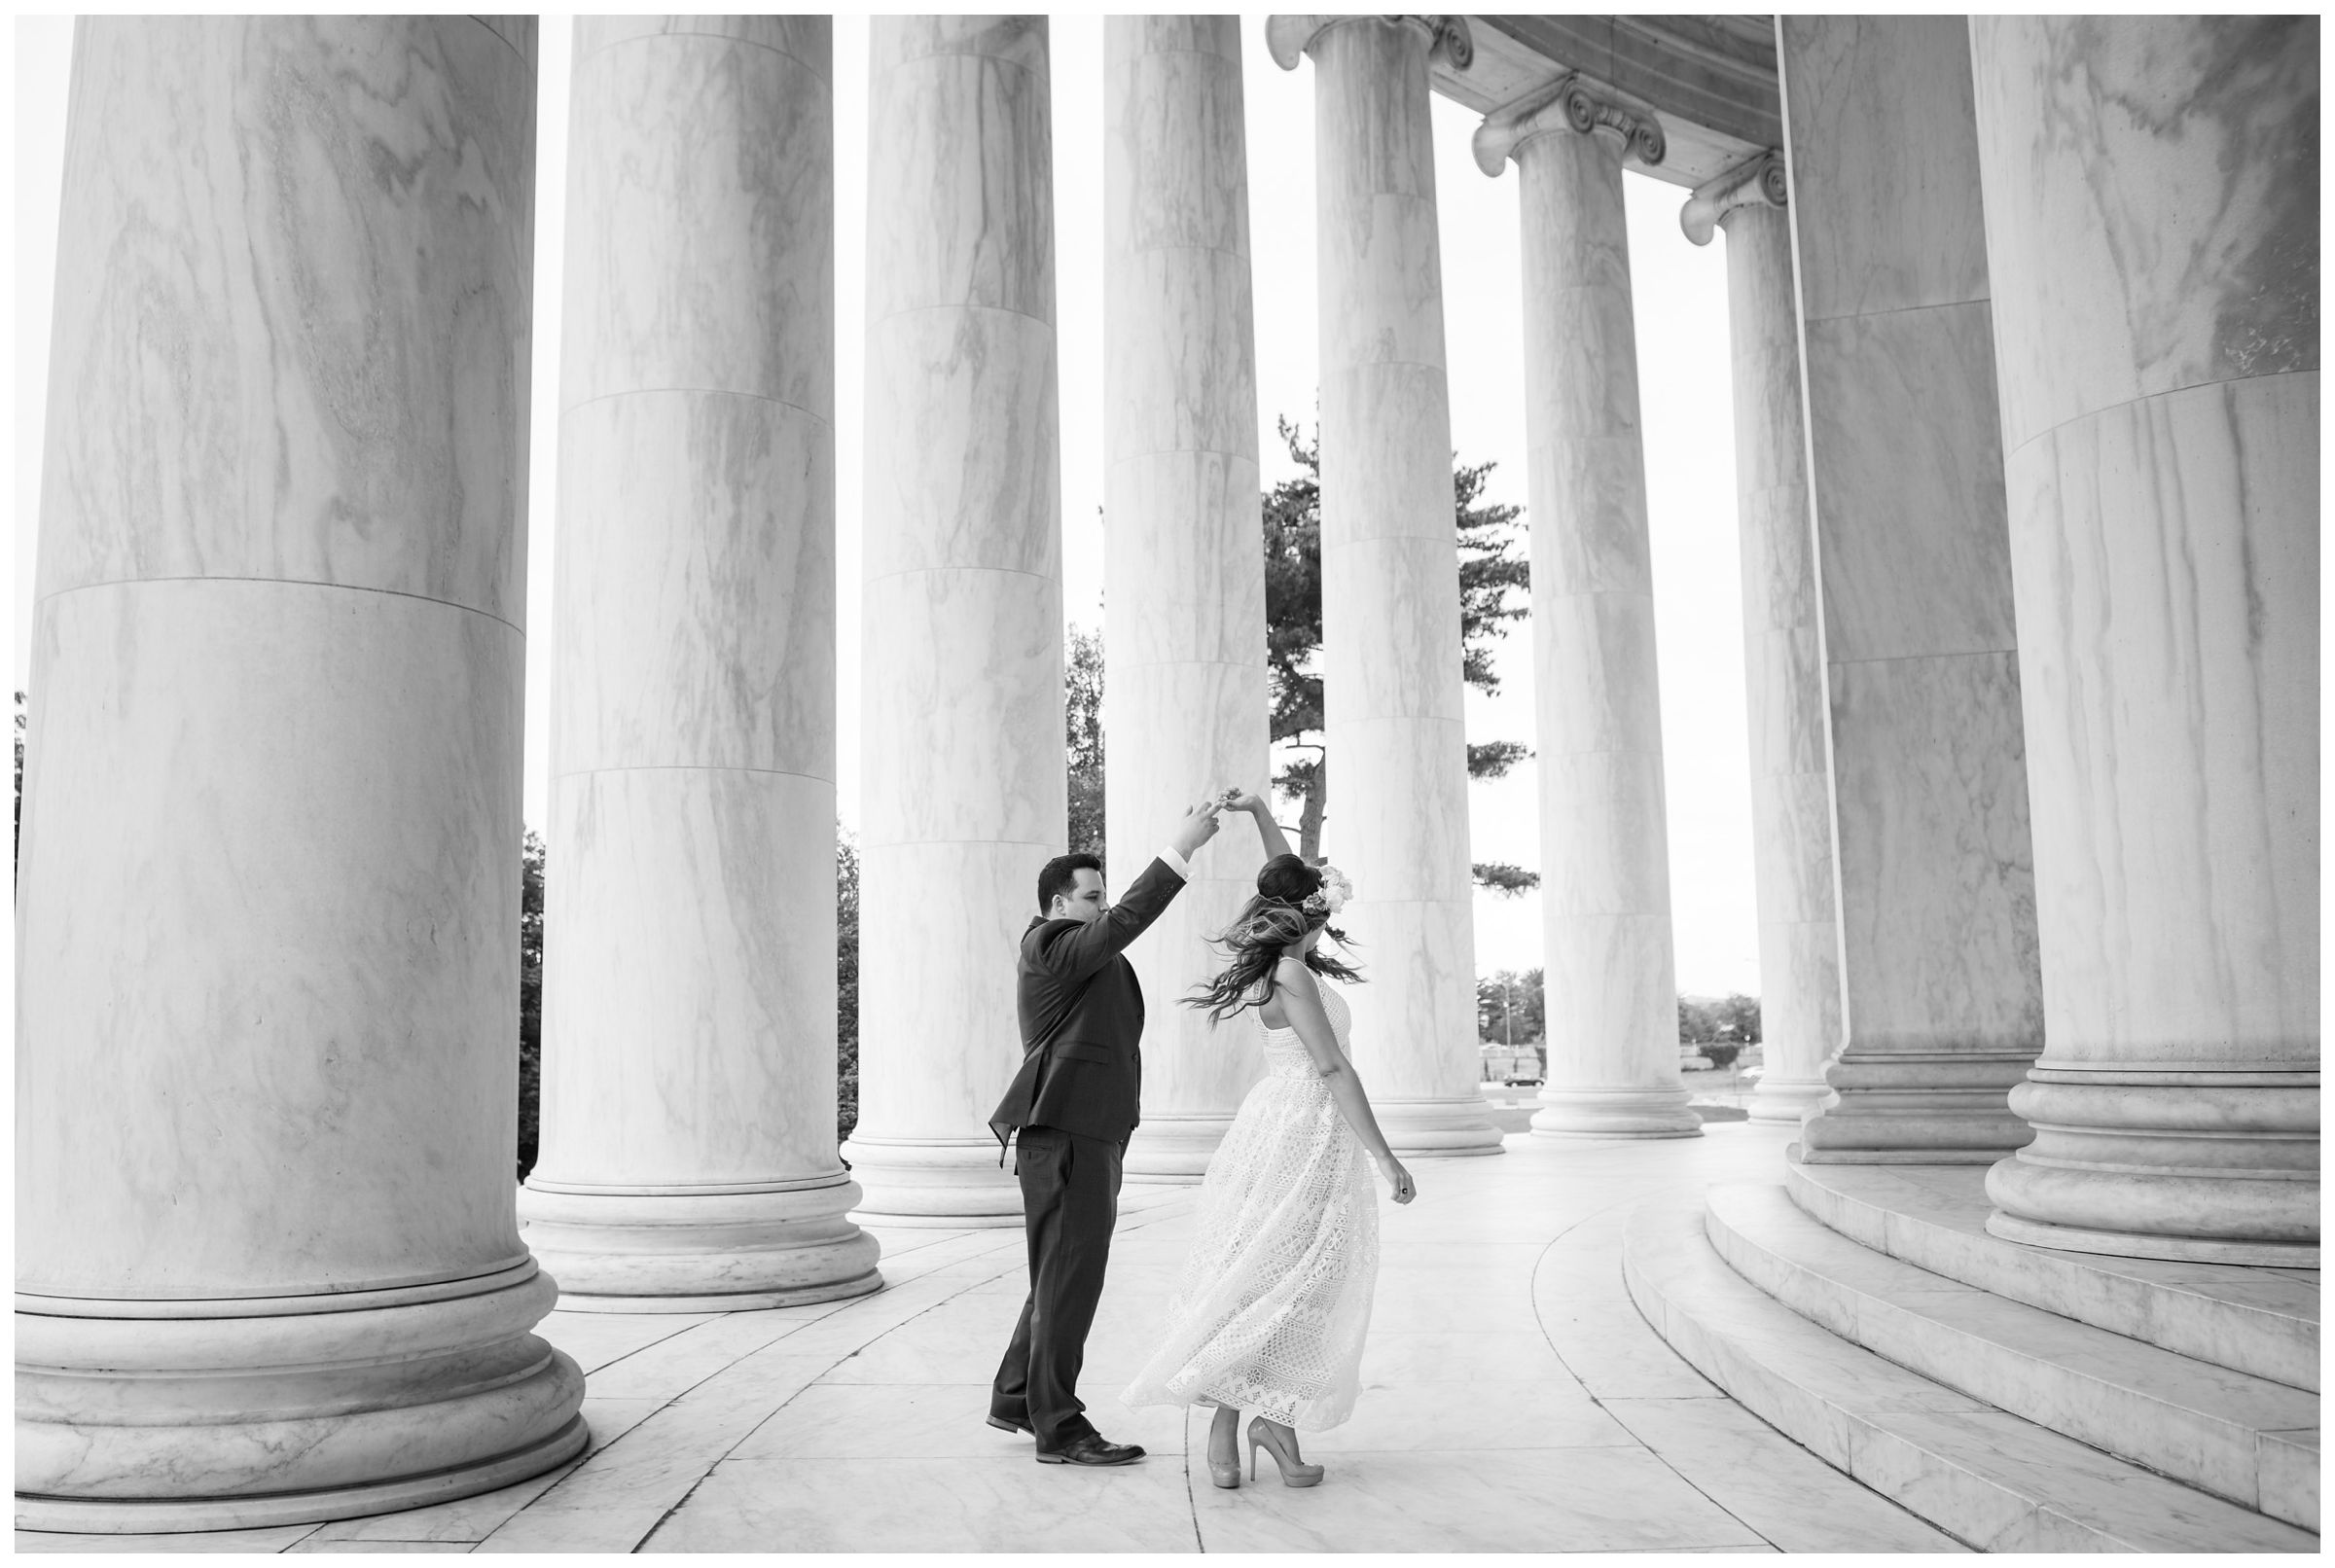 groom twirling bride amongst columns at the Jefferson Memorial during DC monument wedding day in Washington